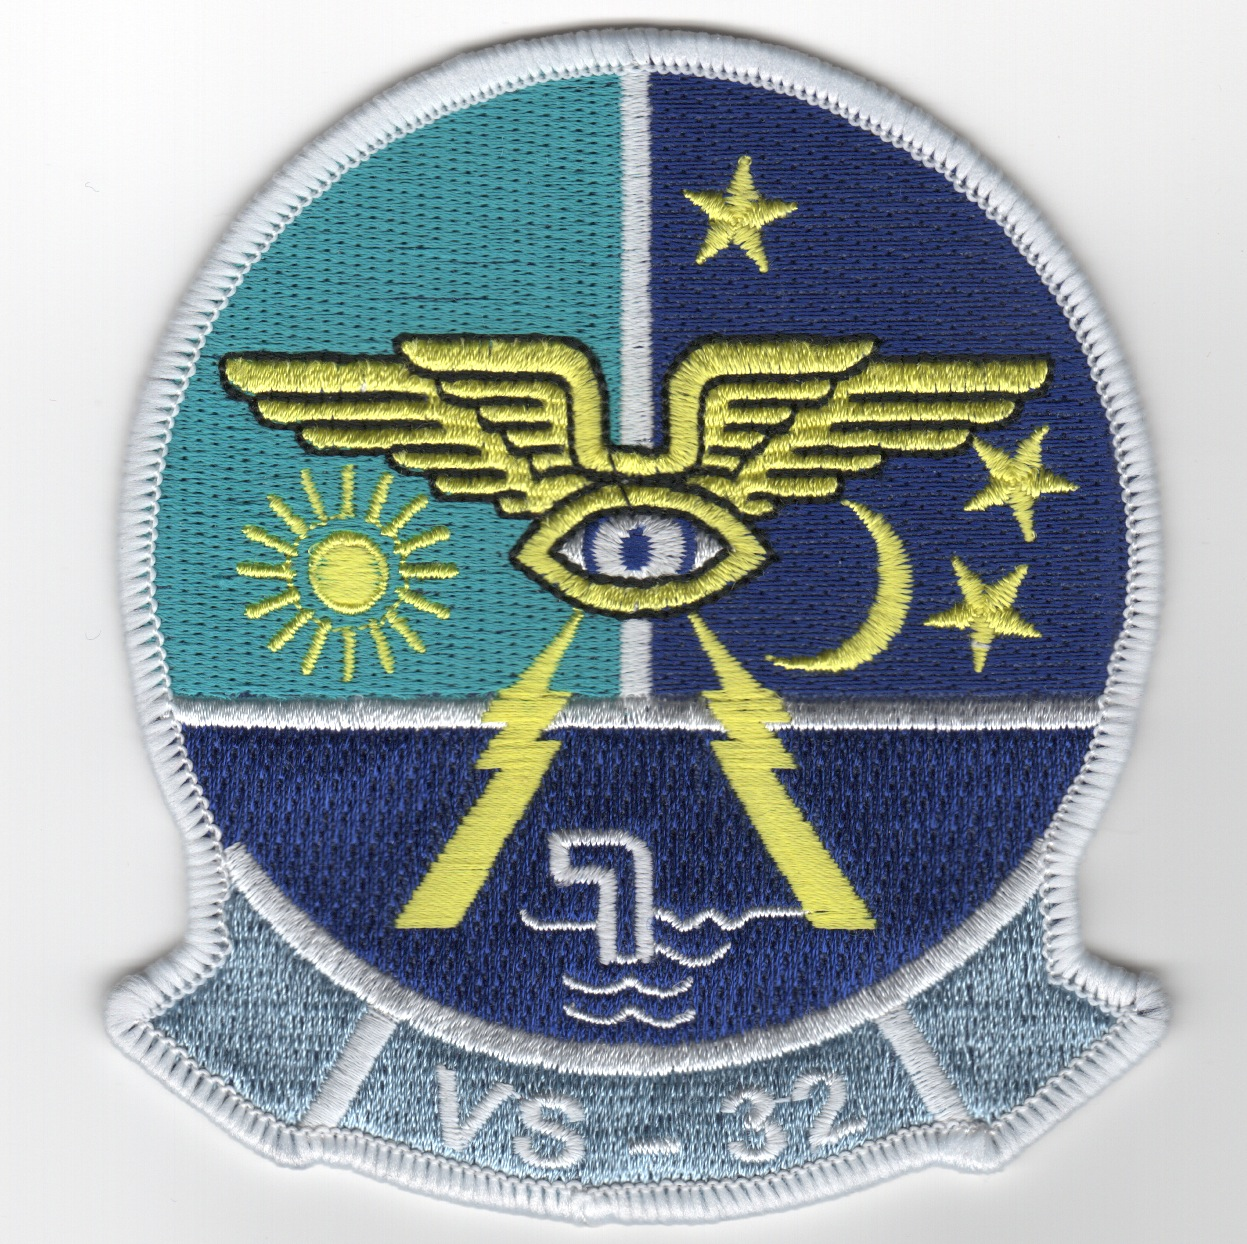 VS-32 Squadron Patch